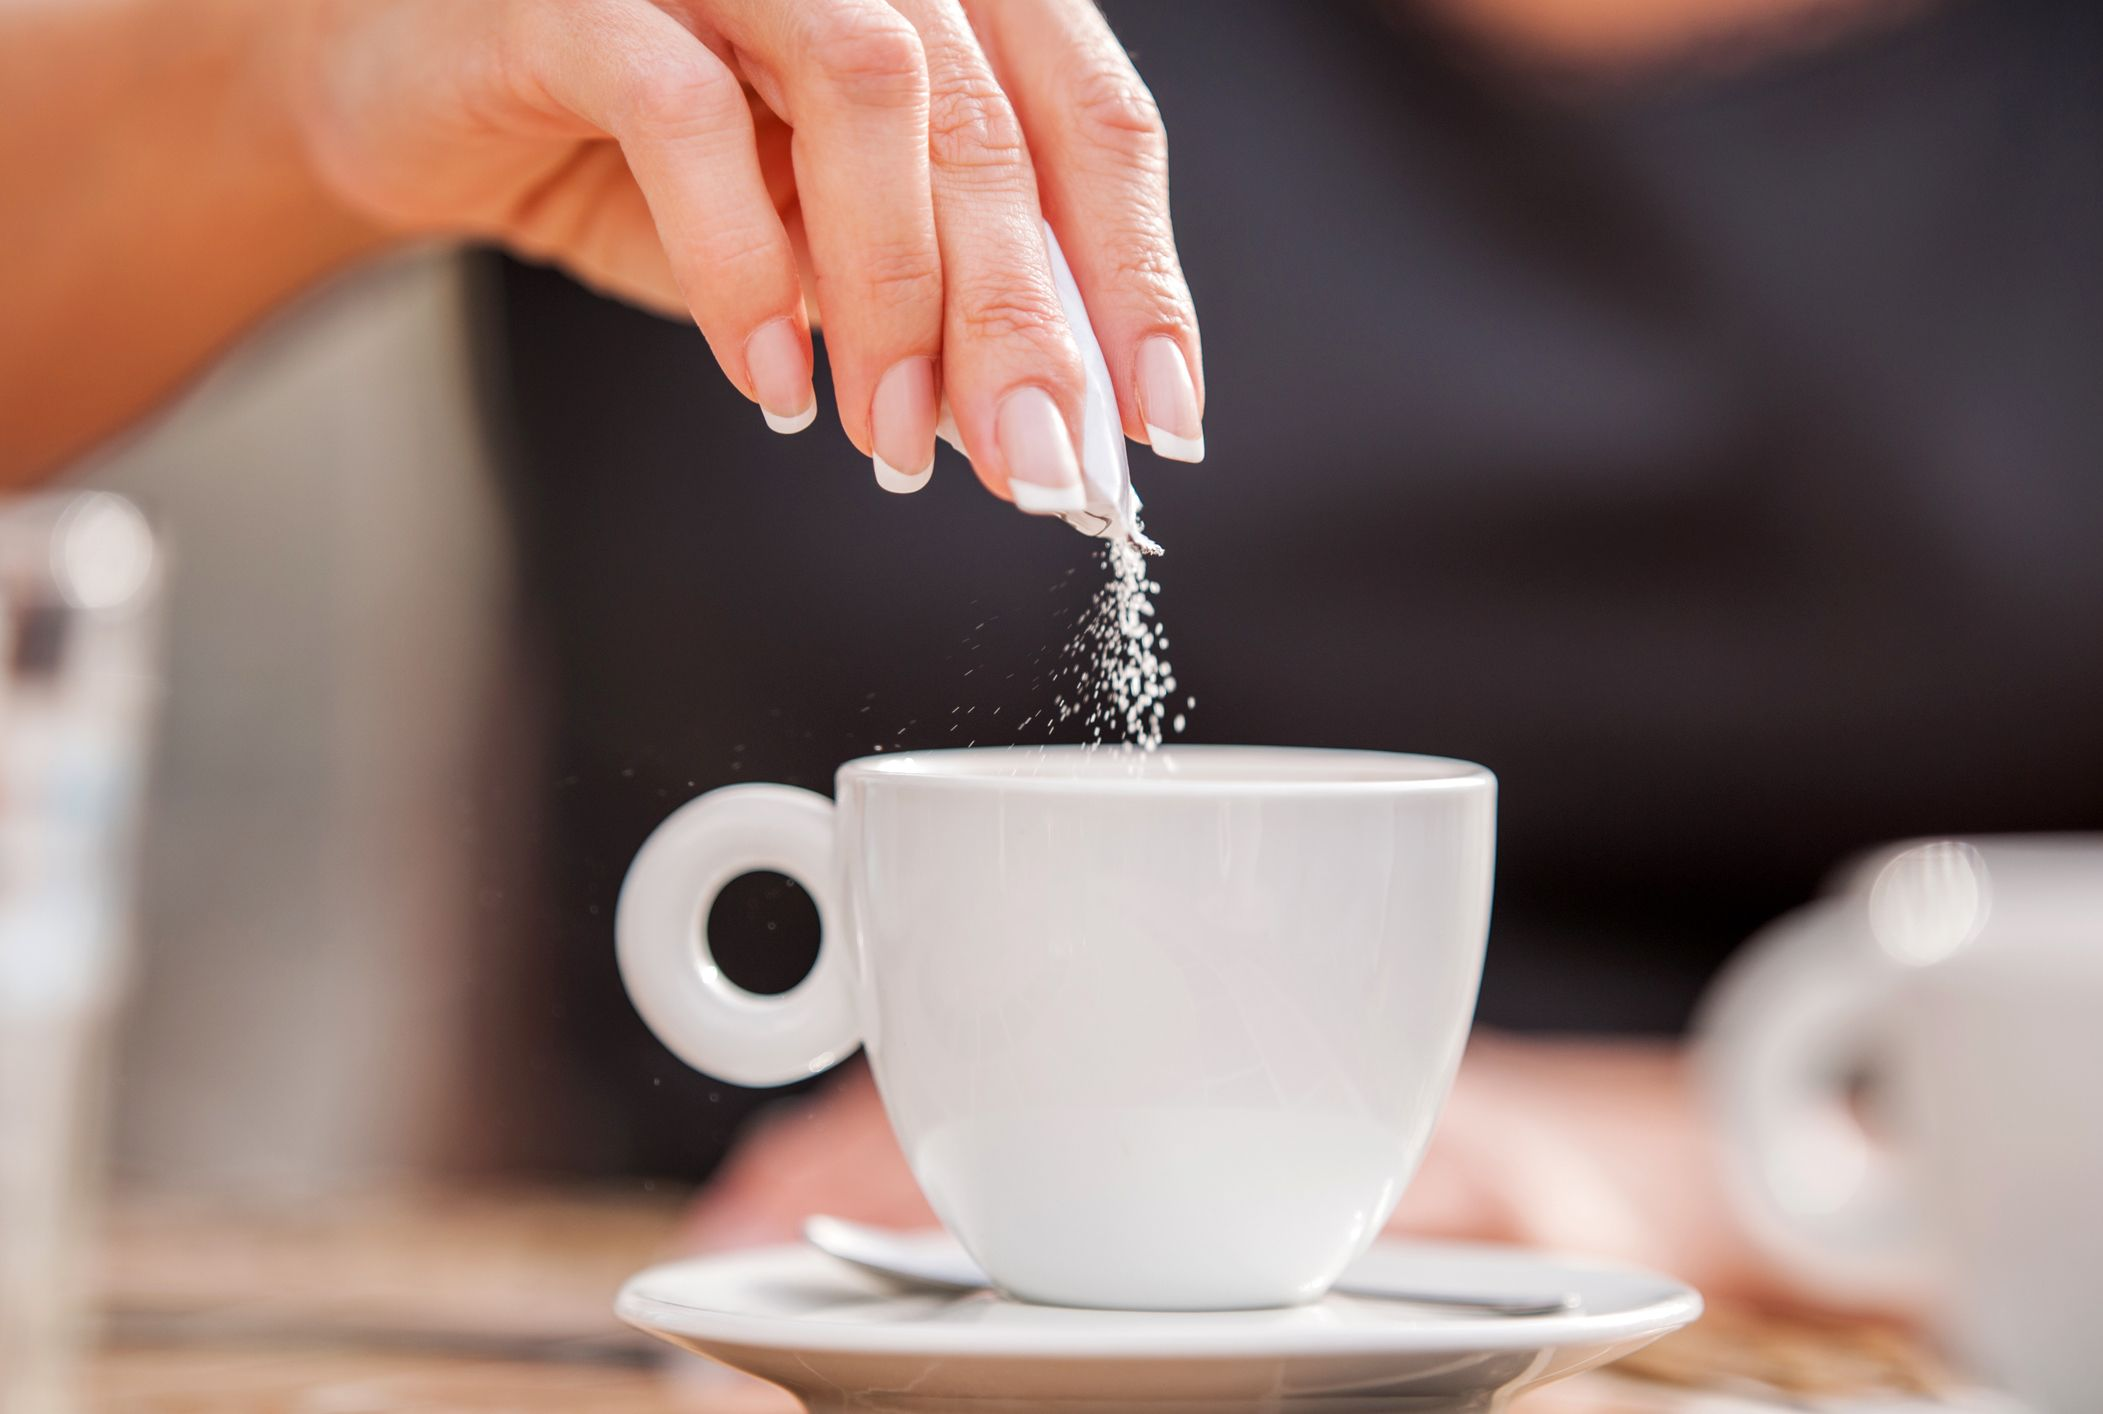 Scientists Say Preparing Tea in a Certain Way Could Avert Loneliness